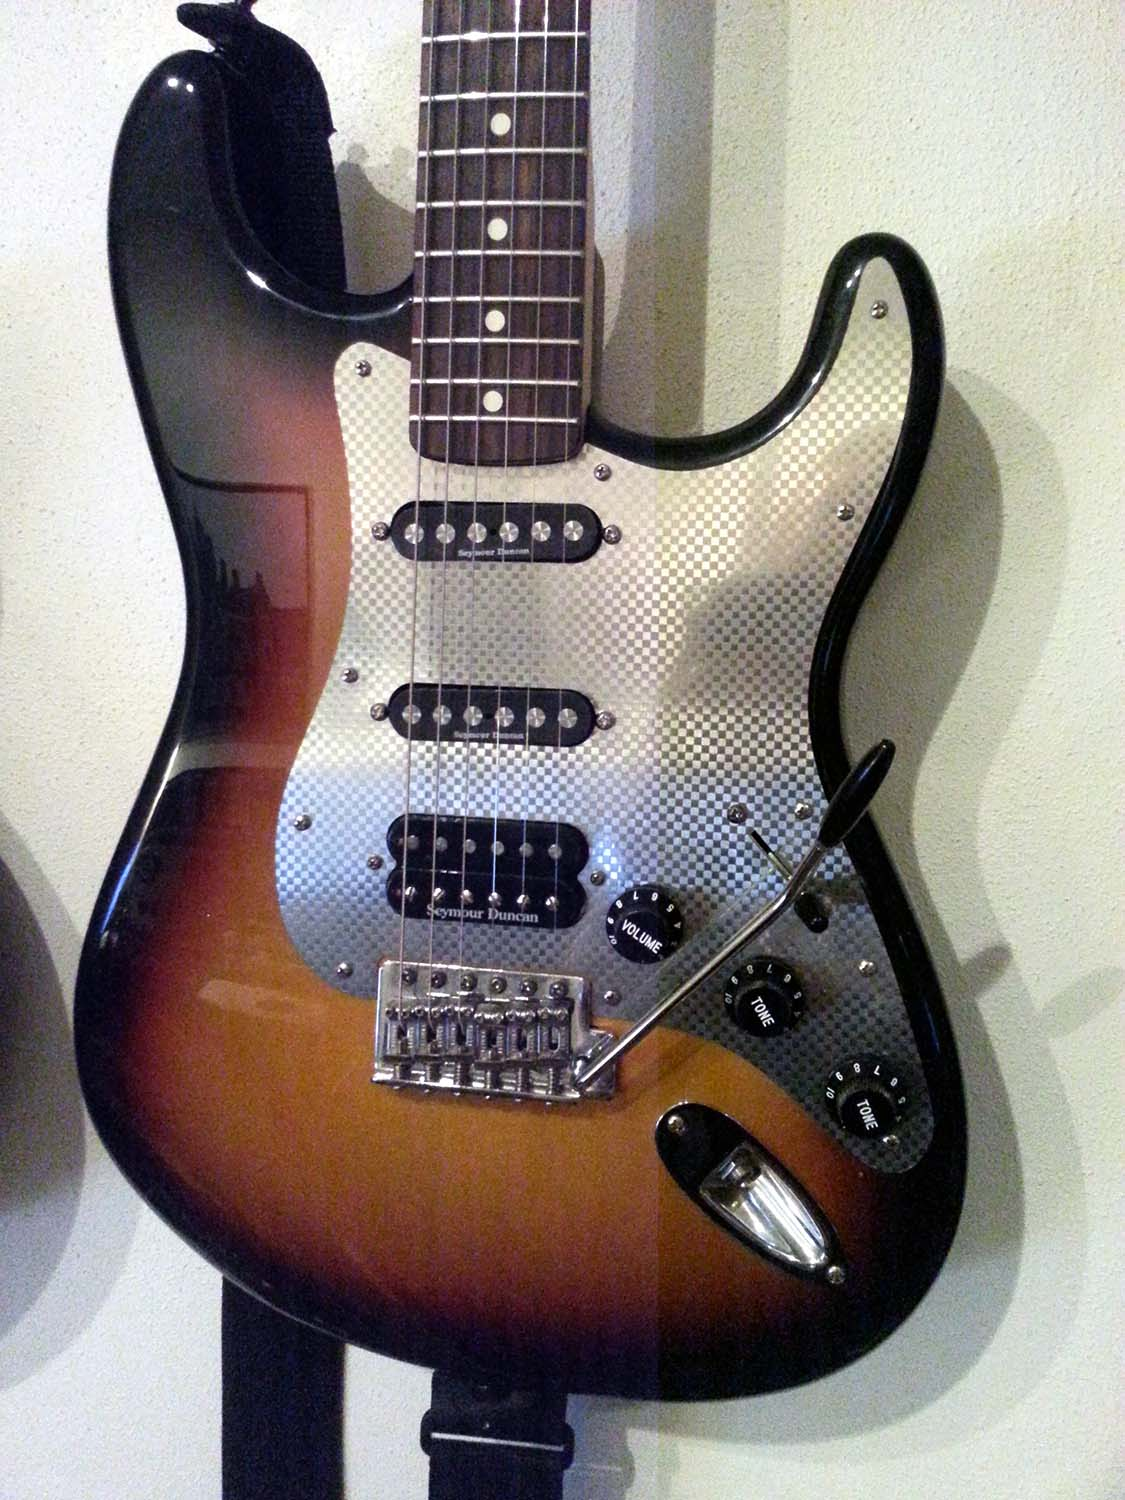 From Jurriaan in Amsterdam  Customised Strat with Mozaic